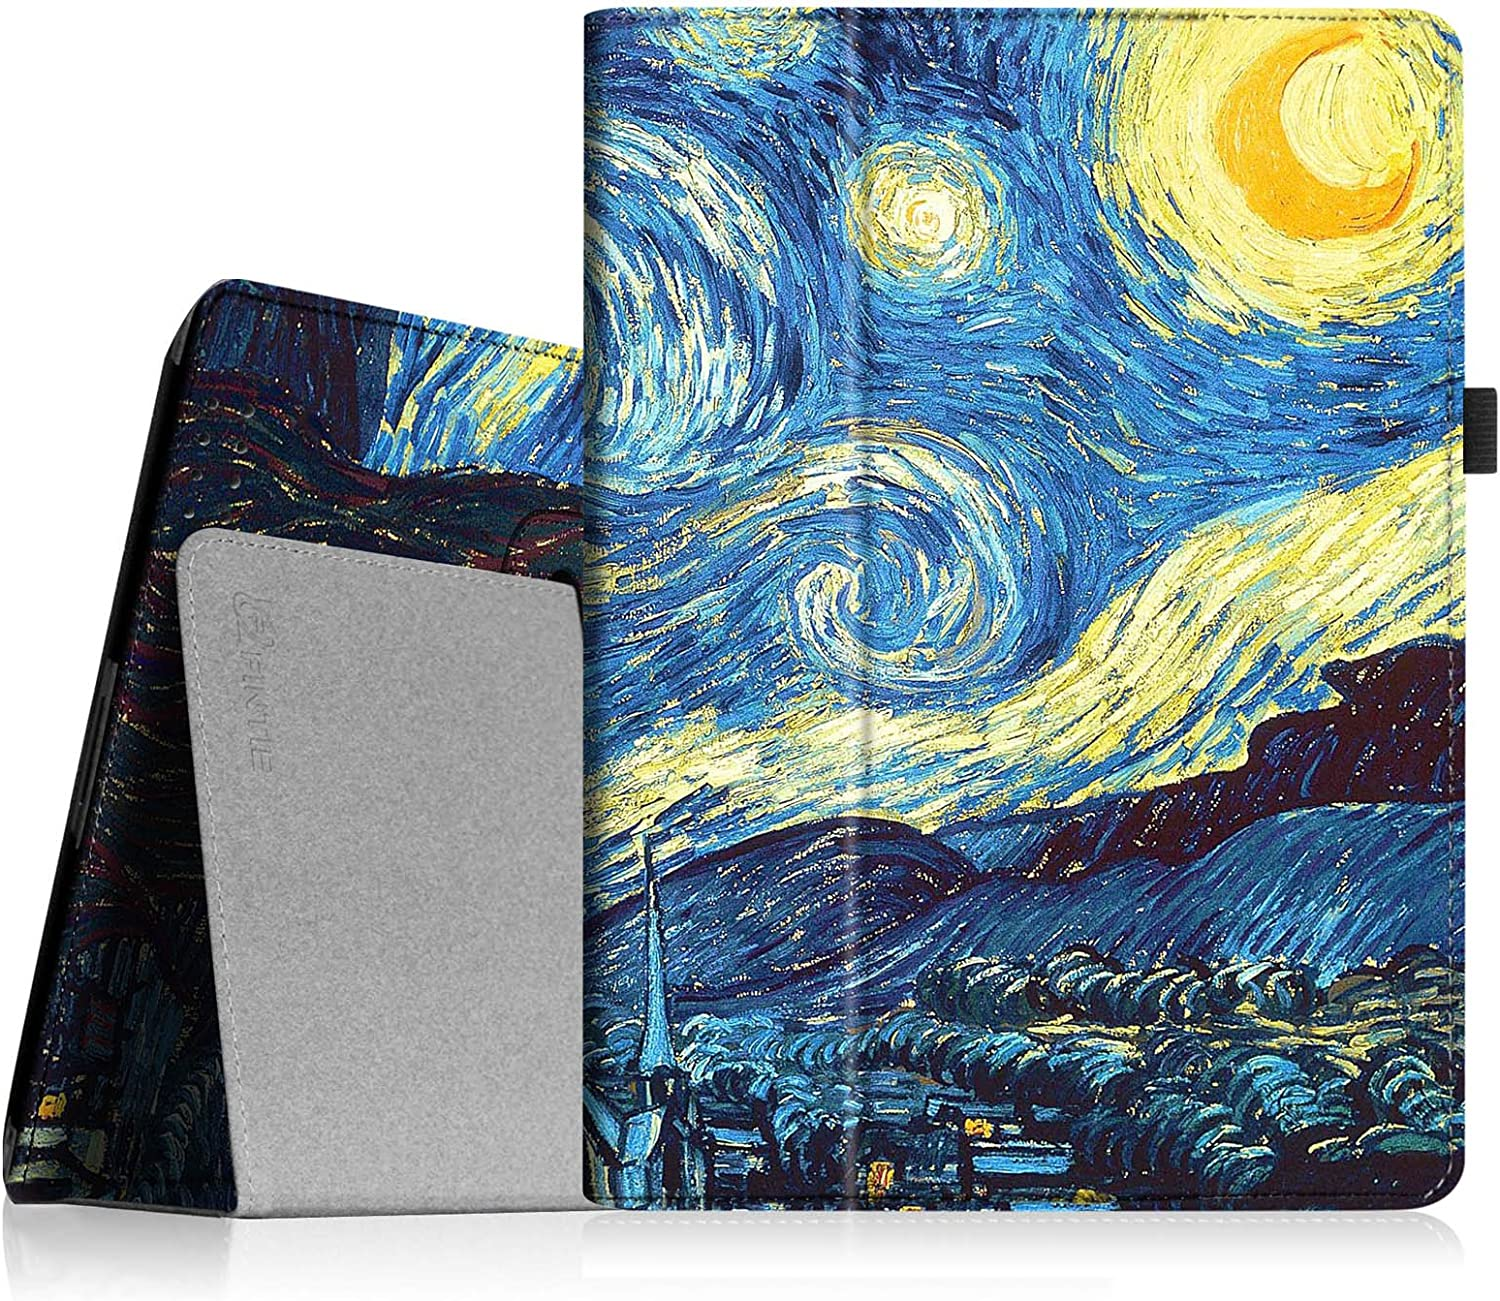 Fintie Folio Case for iPad 2 3 4 (Old Model) 9.7 inch Tablet - Slim Fit Smart Stand Protective Cover Auto Sleep/Wake for iPad 2, iPad 3rd gen & iPad 4th Generation with Retina Display, Starry Night